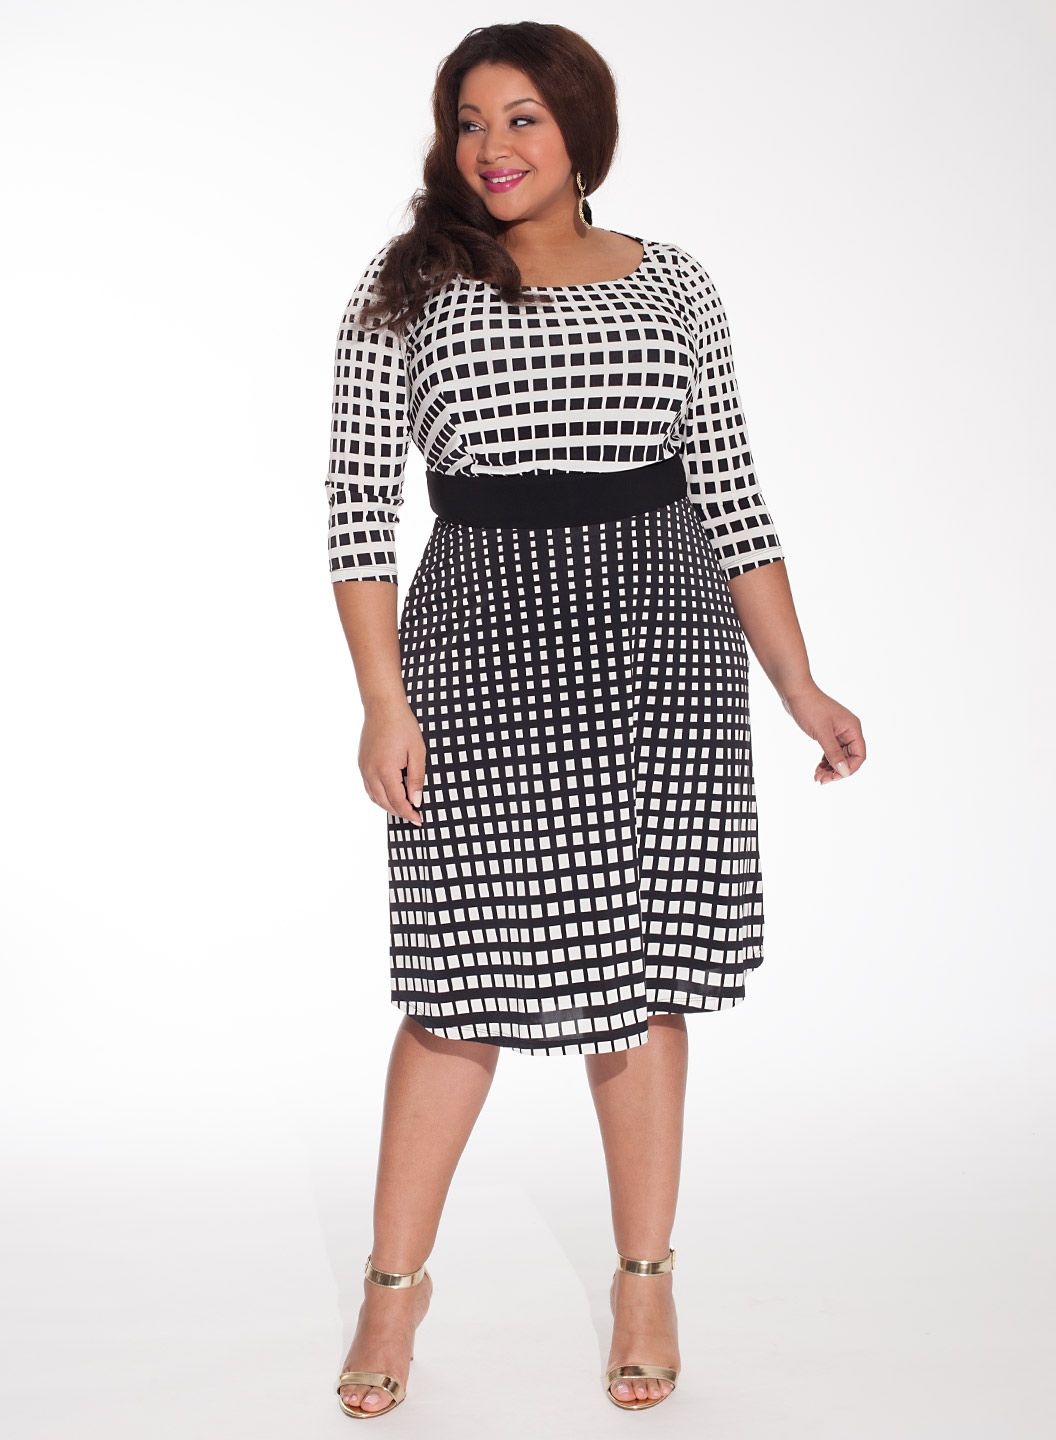 Plus size wedding guest dresses for summer black and for Black and white dresses for wedding guests